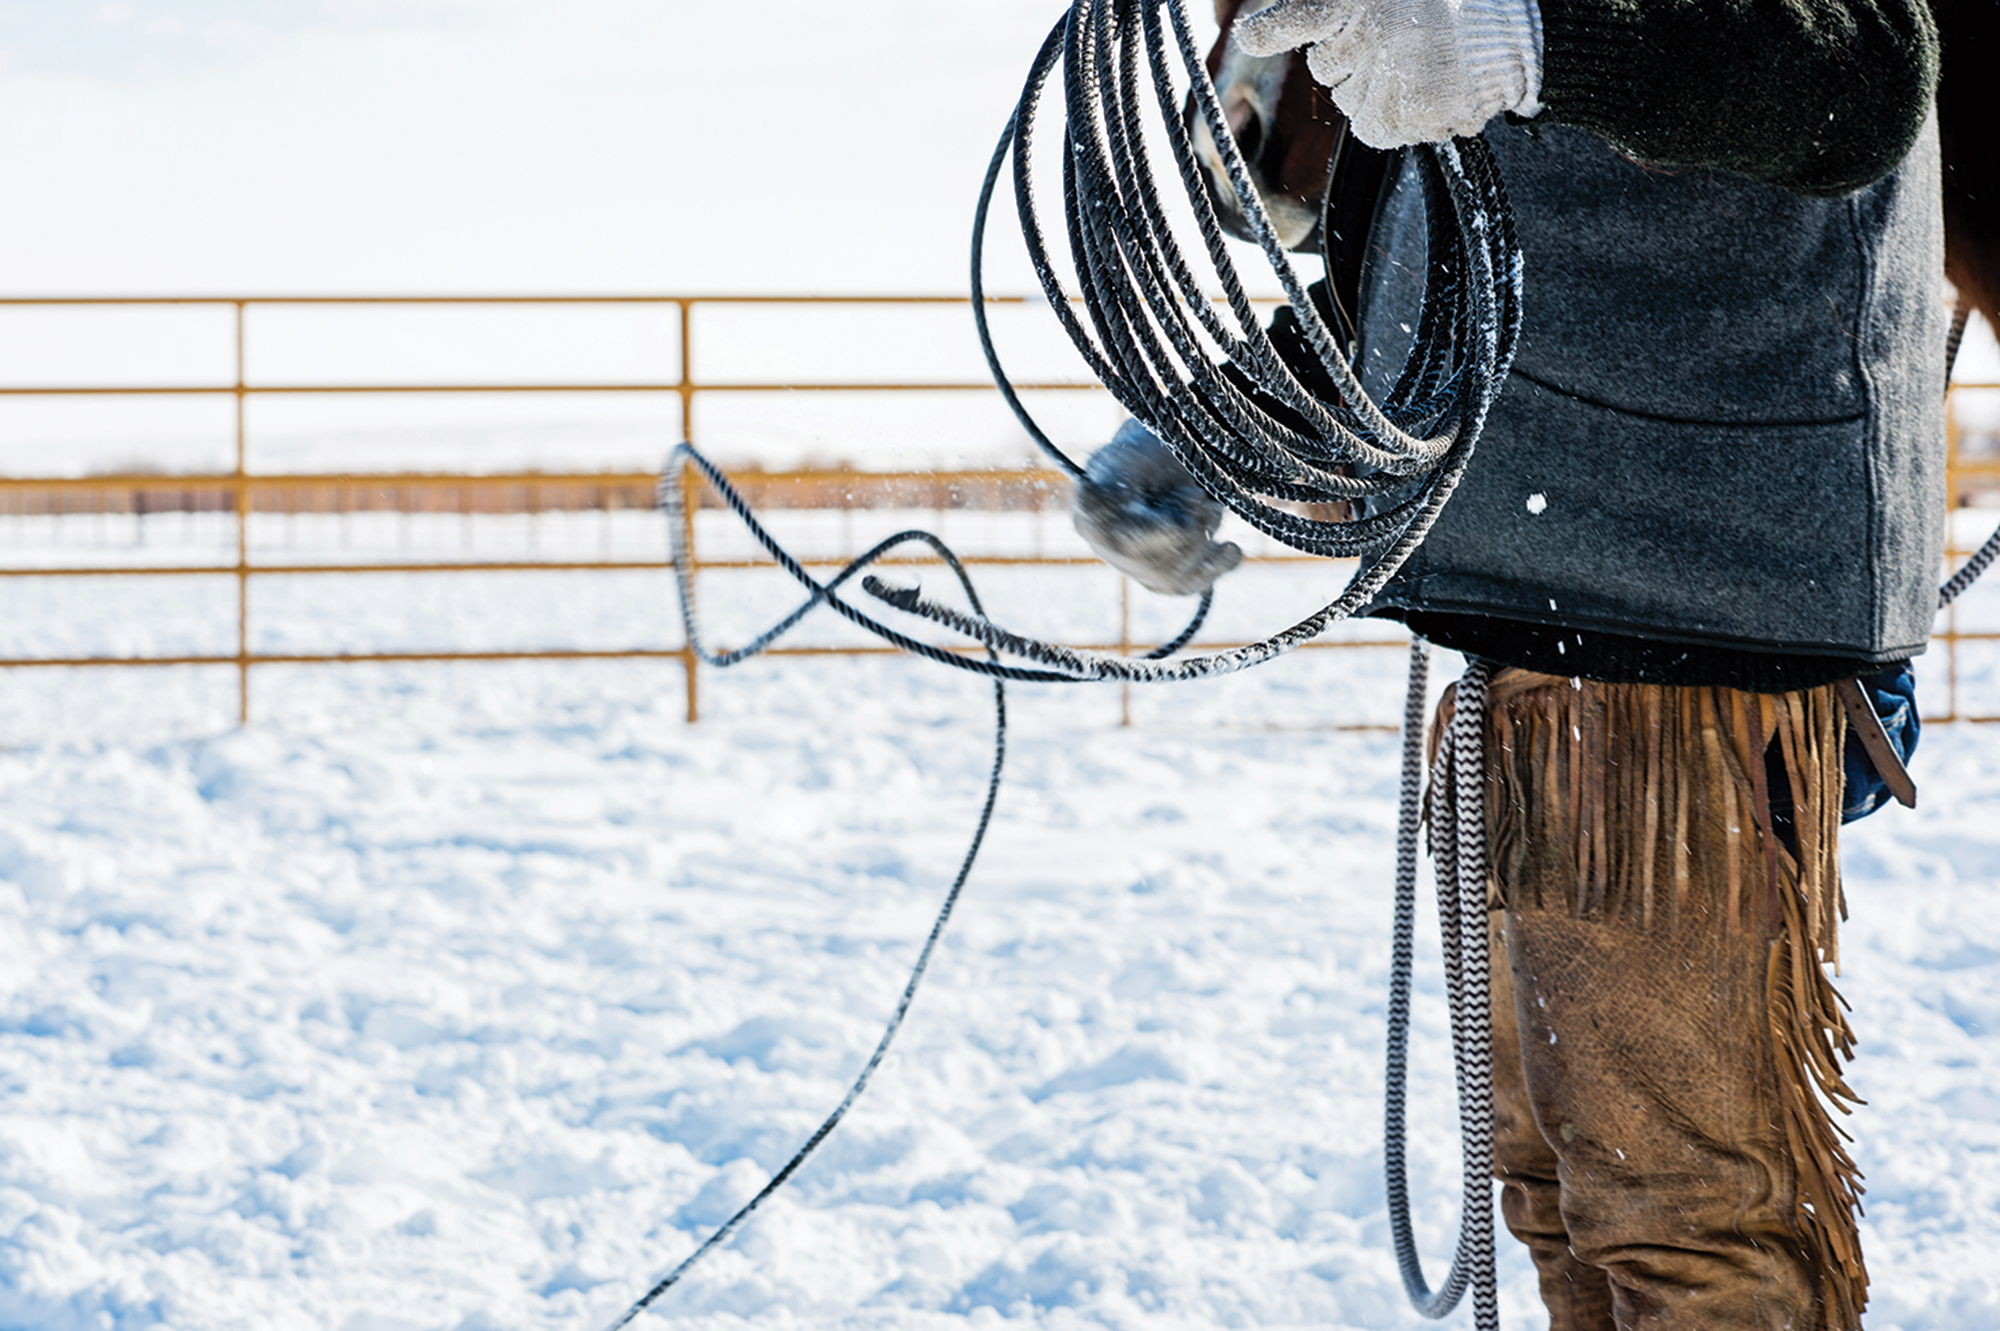 Person holding a lasso next to a horse in a snowy enclosure